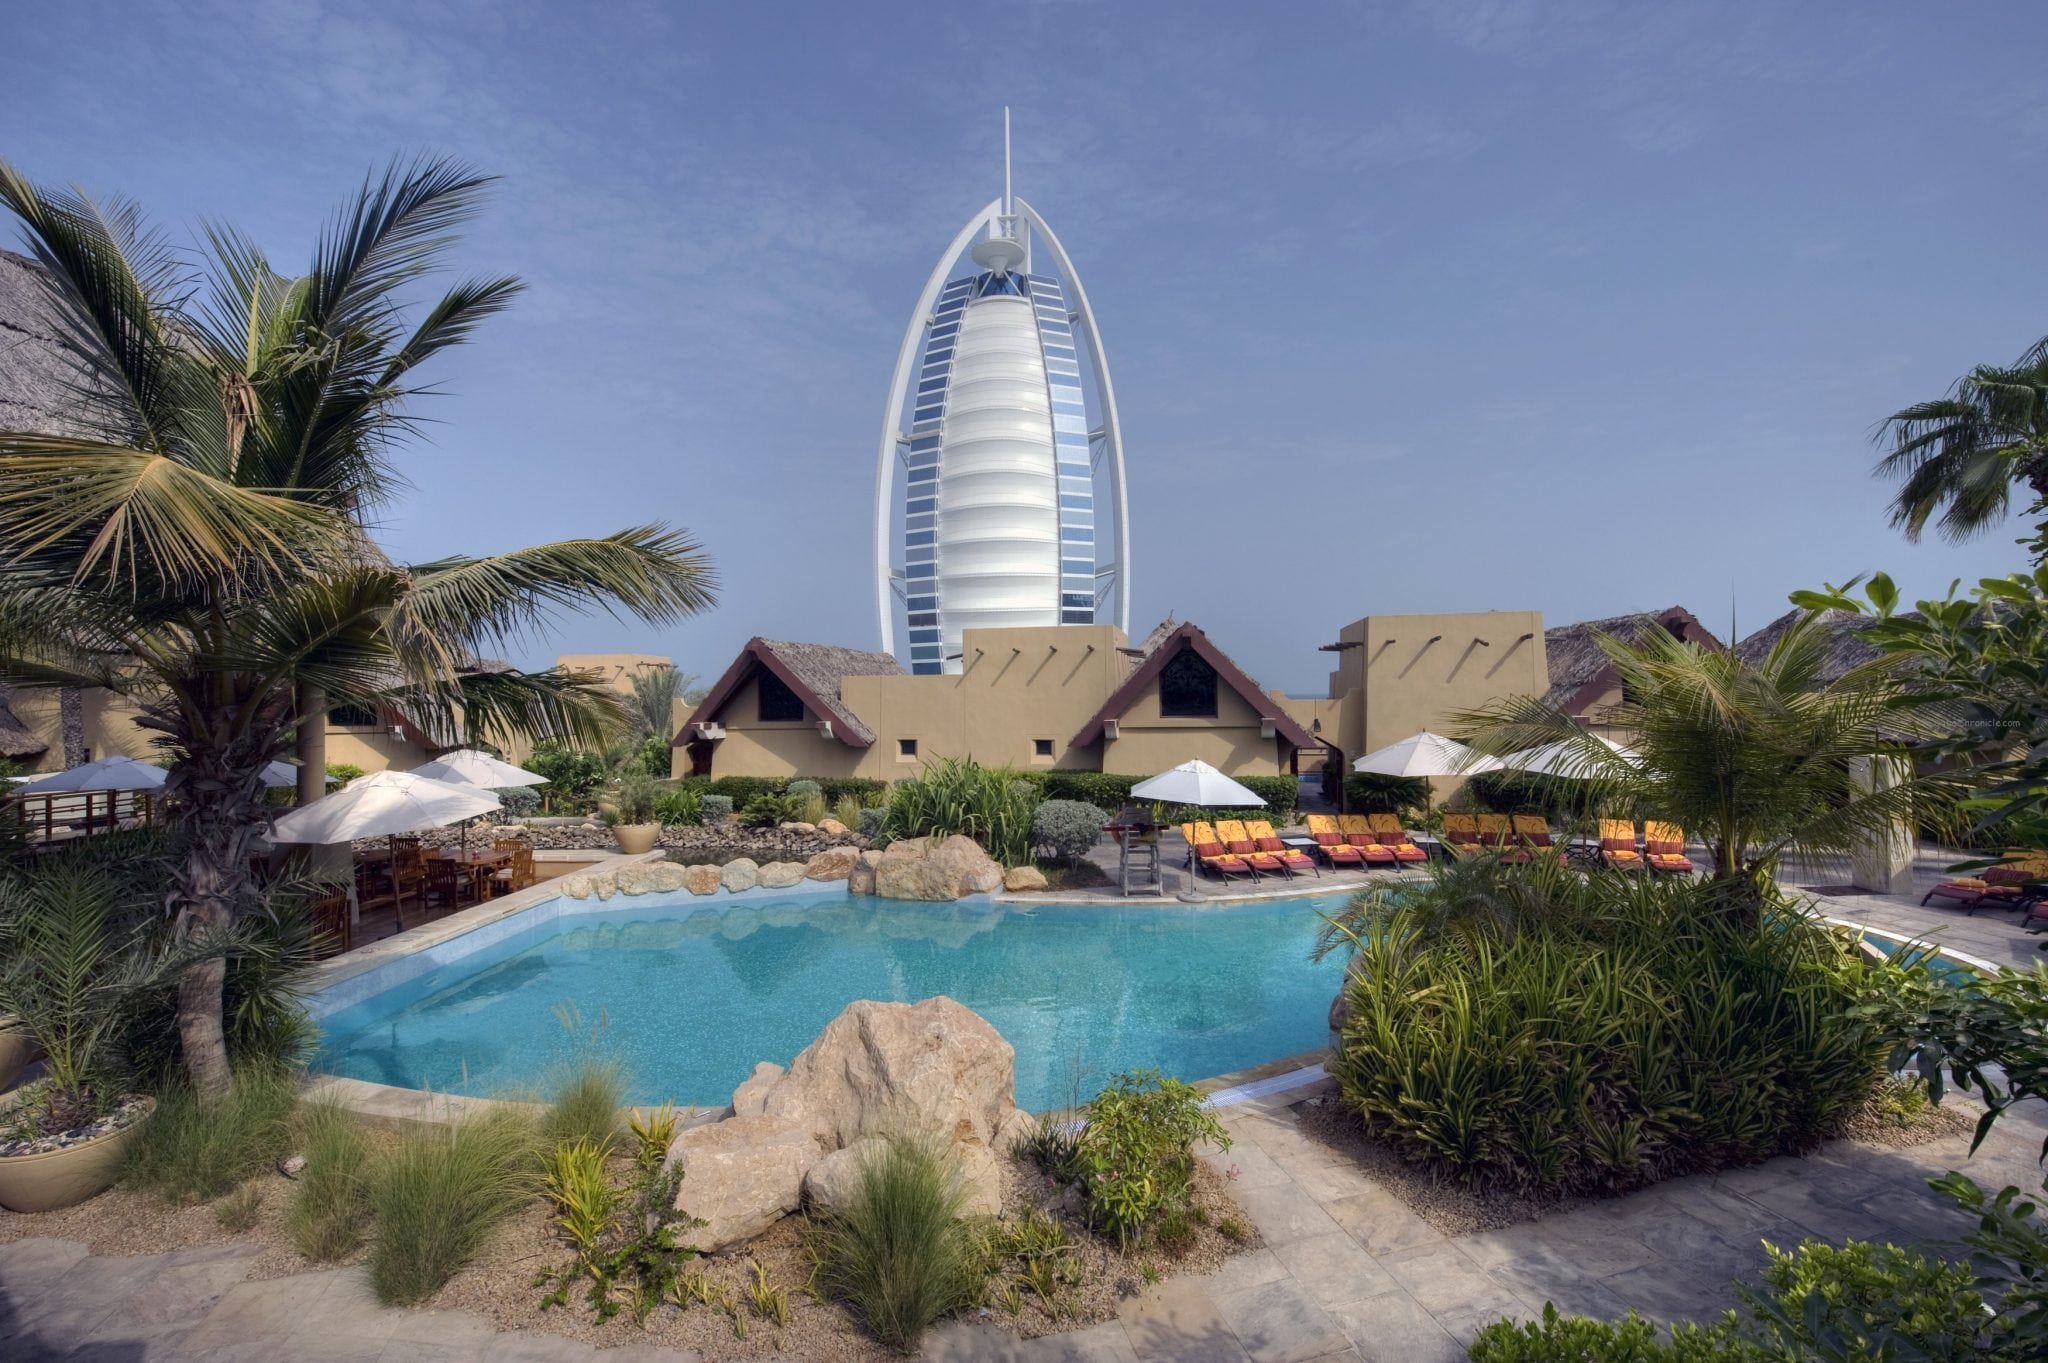 Jumeirah_Beach_Hotel_-_Beit_Al_Bahar_-_Exclusive_pool_2